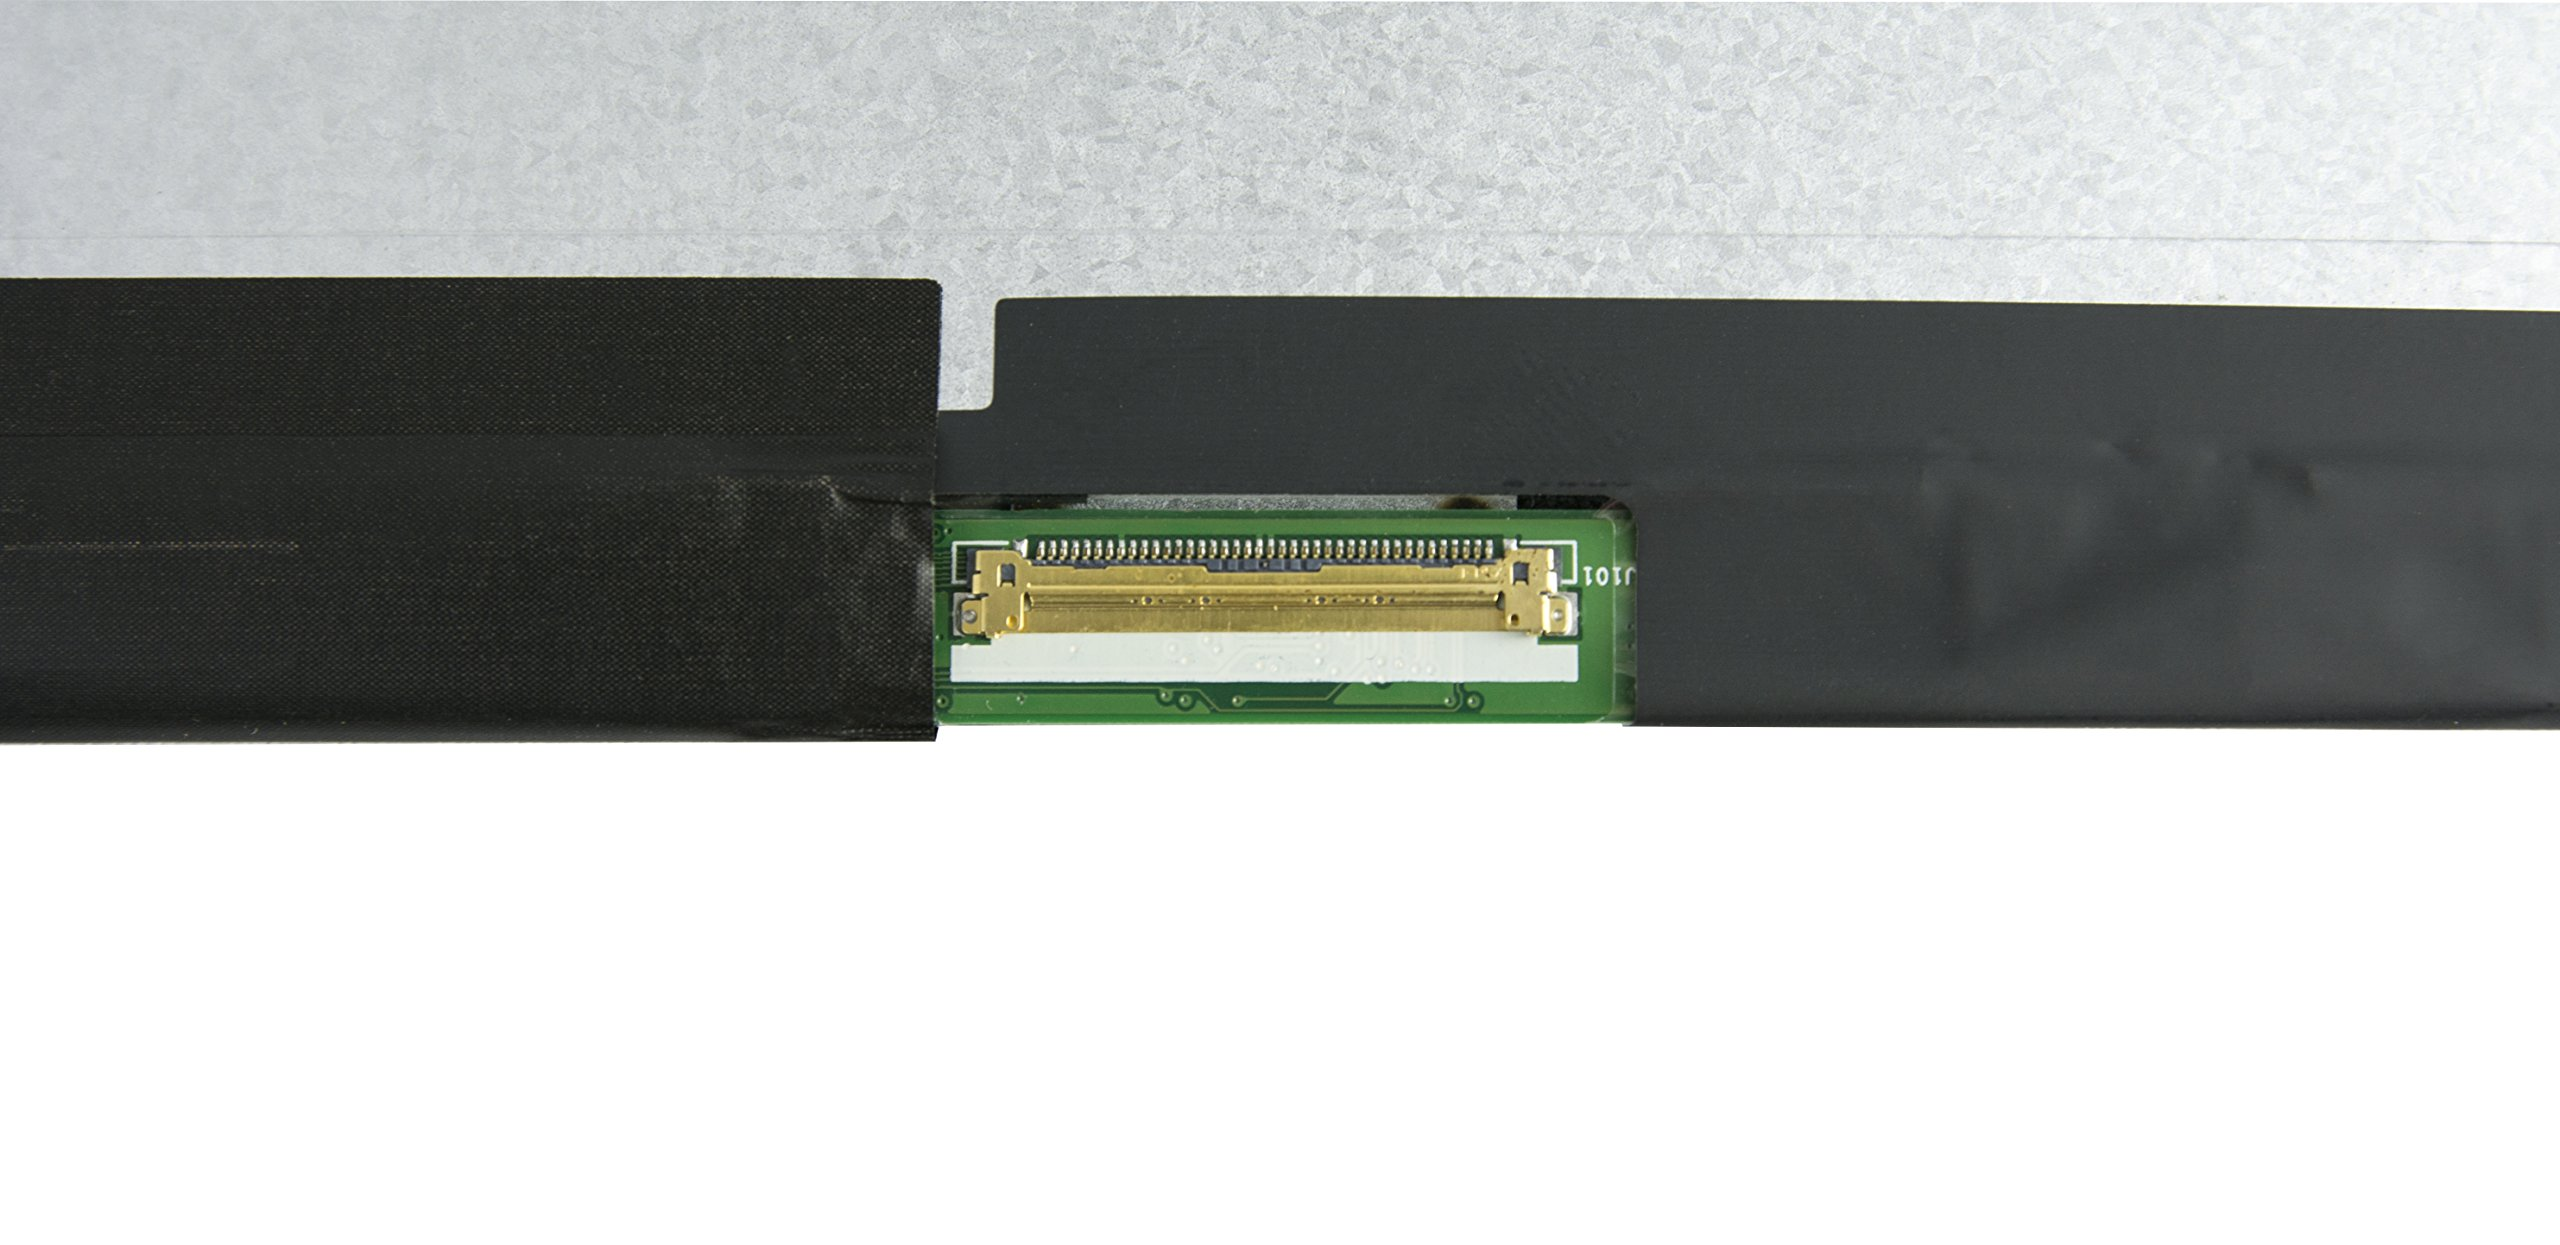 B156XTT01.1 15.6'' LED Backlight Laptop Touch Replacement Screen LTN156AT36-D01 Fits Dell 8CTNG, Dell Inspiron 15-3541, 15-3542 by VIVO (Image #3)